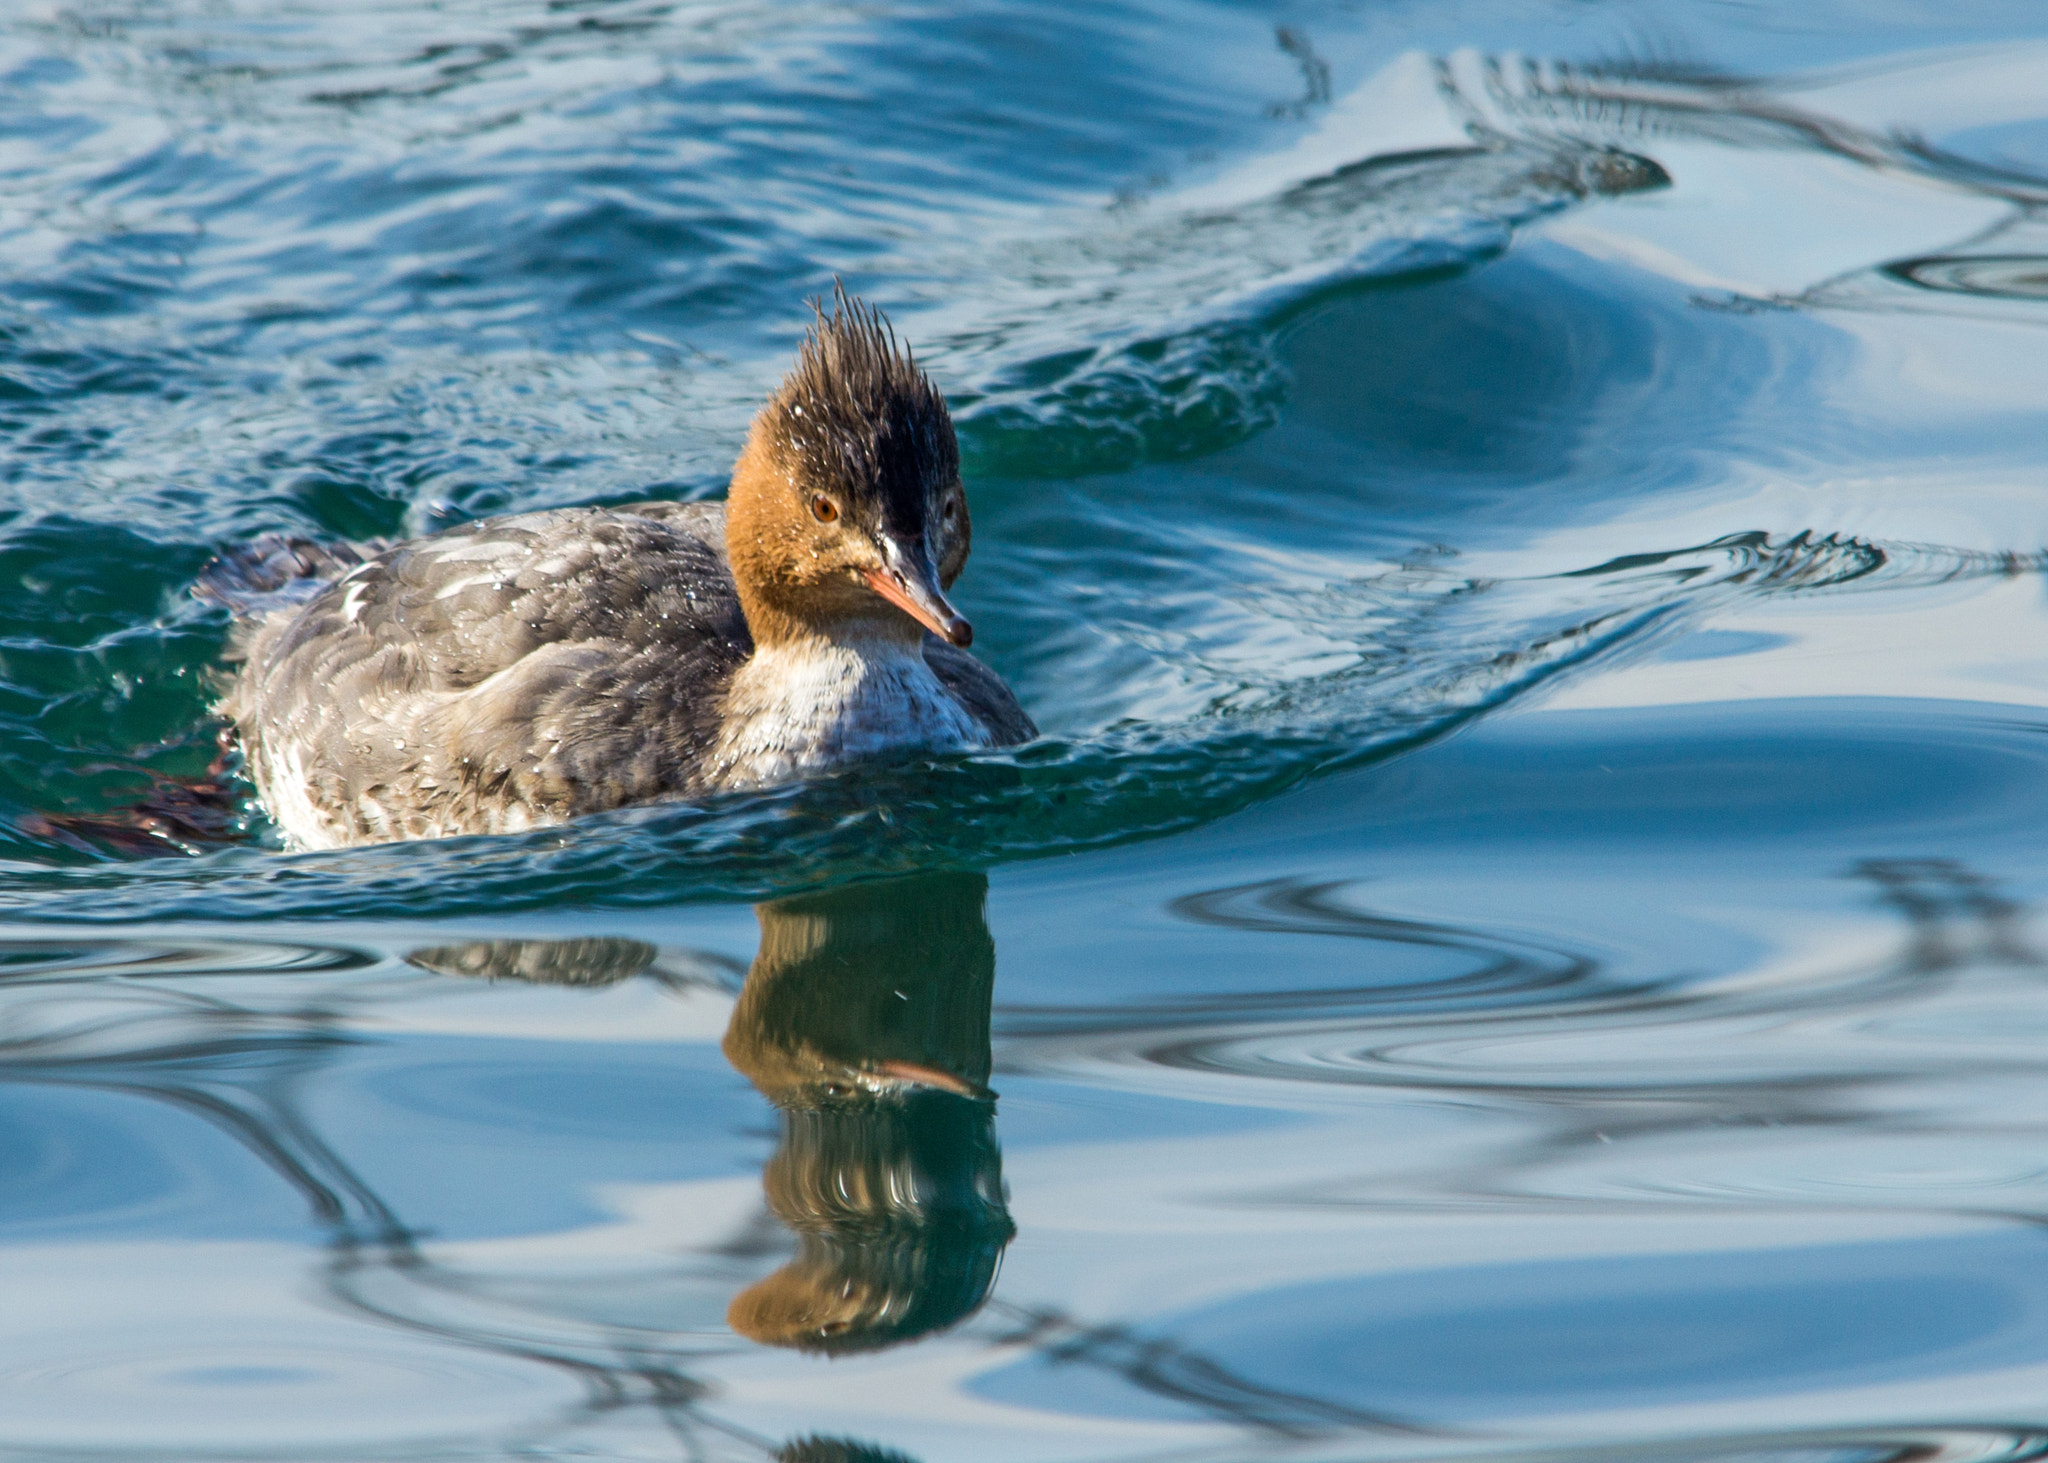 Photograph Red-breasted Merganser by Gail MacLellan on 500px